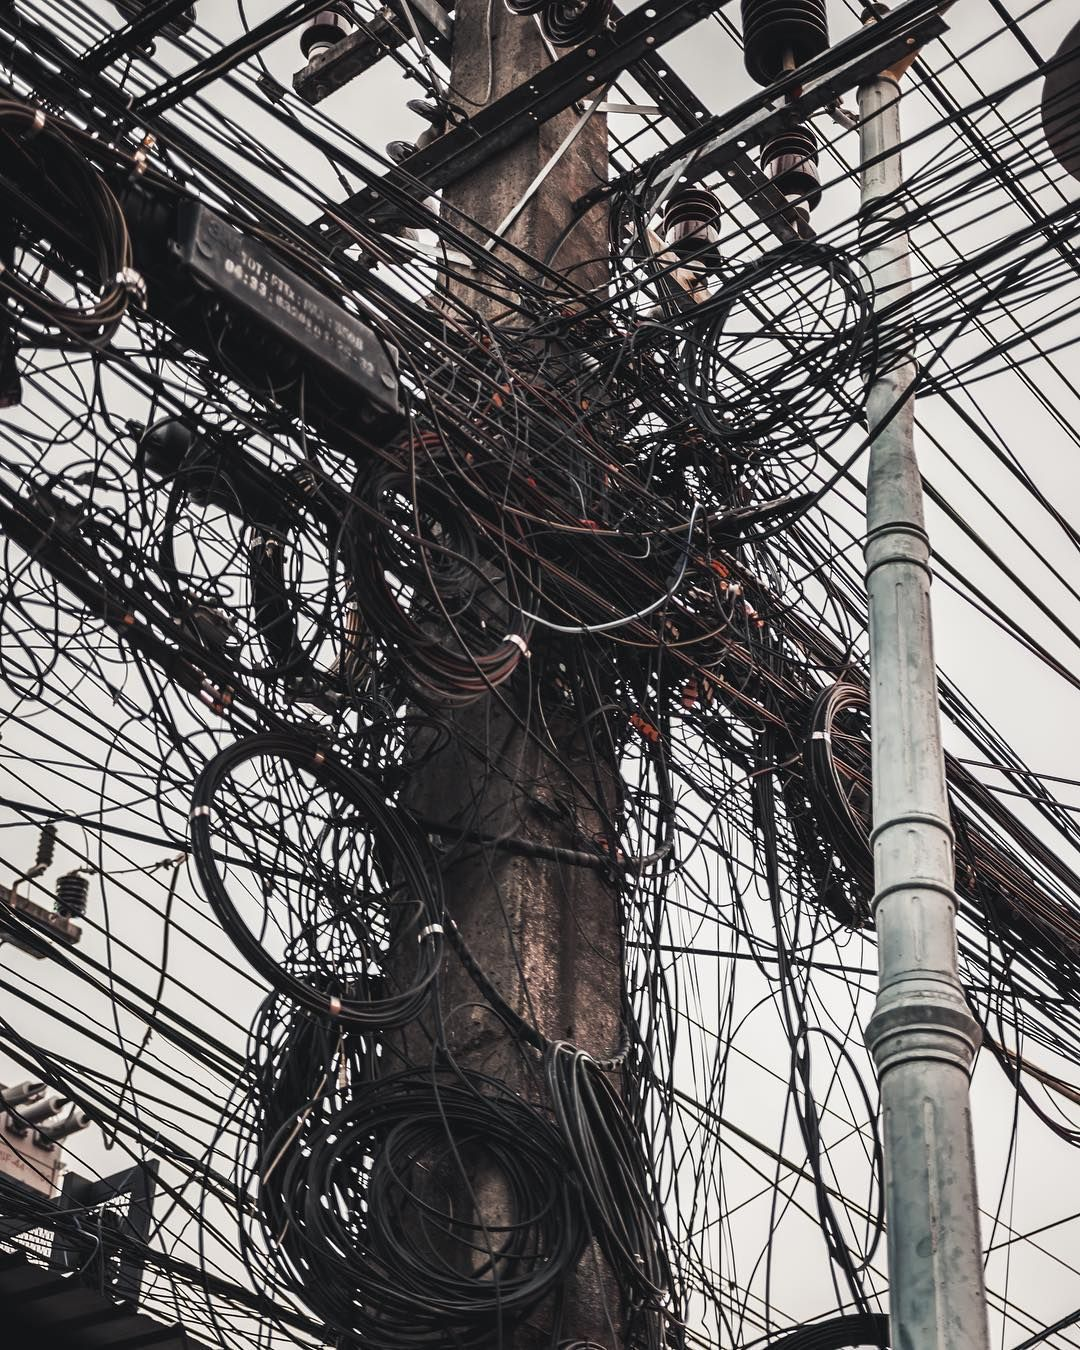 hight resolution of electrical spaghetti messy electrical wiring at phuket patongbeach banglaroad electrical spaghetti thailandvisit travelawesome goexplore